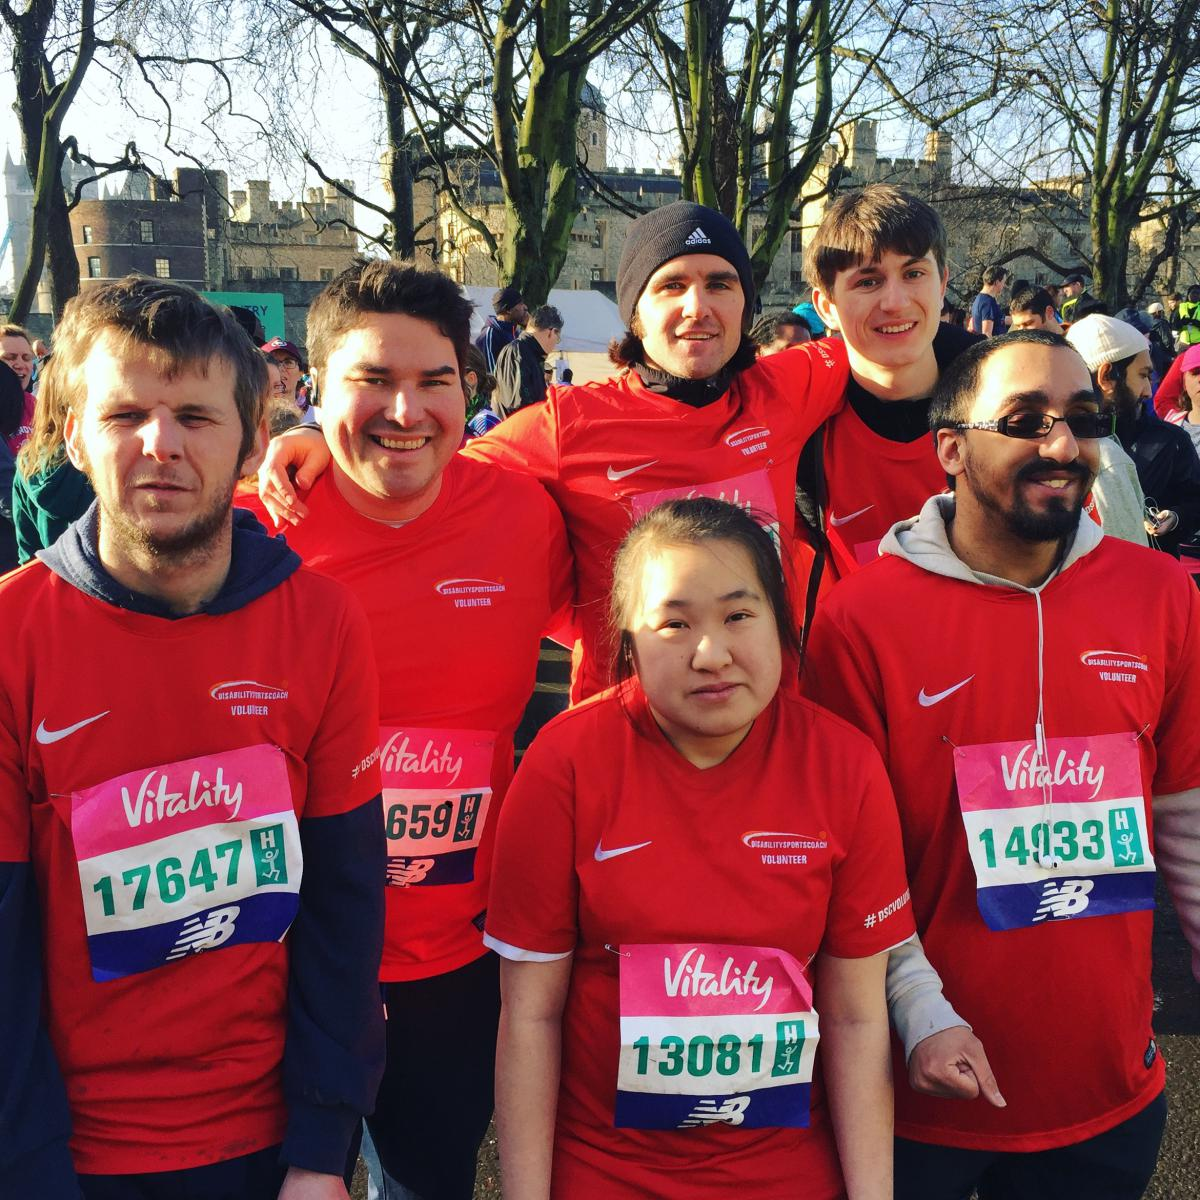 Disability Sports Coach Westminster Mile Runners 2019